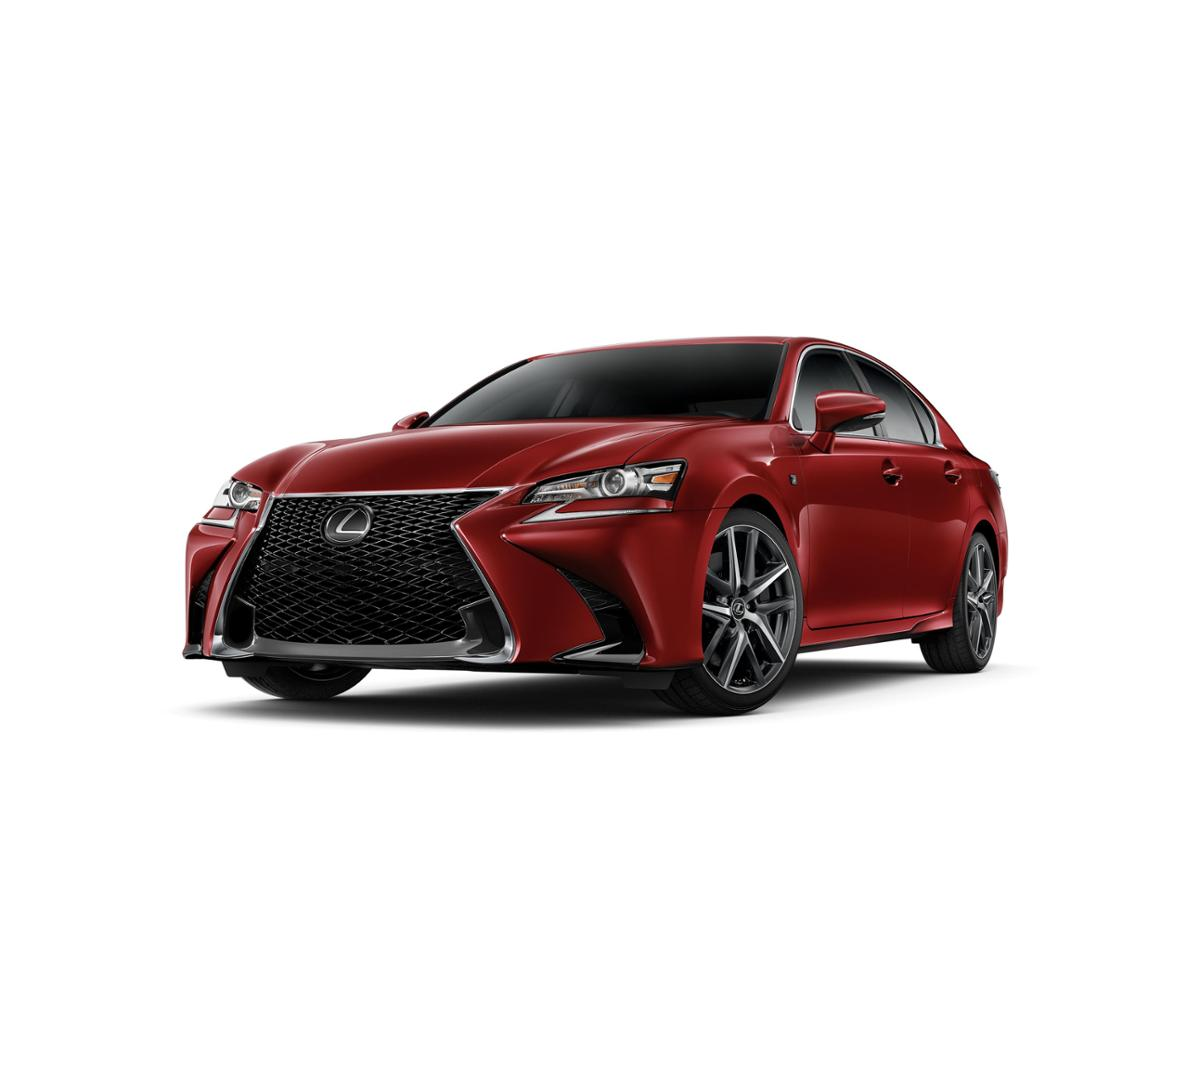 2018 Lexus GS 350 Vehicle Photo in Mission Viejo, CA 92692